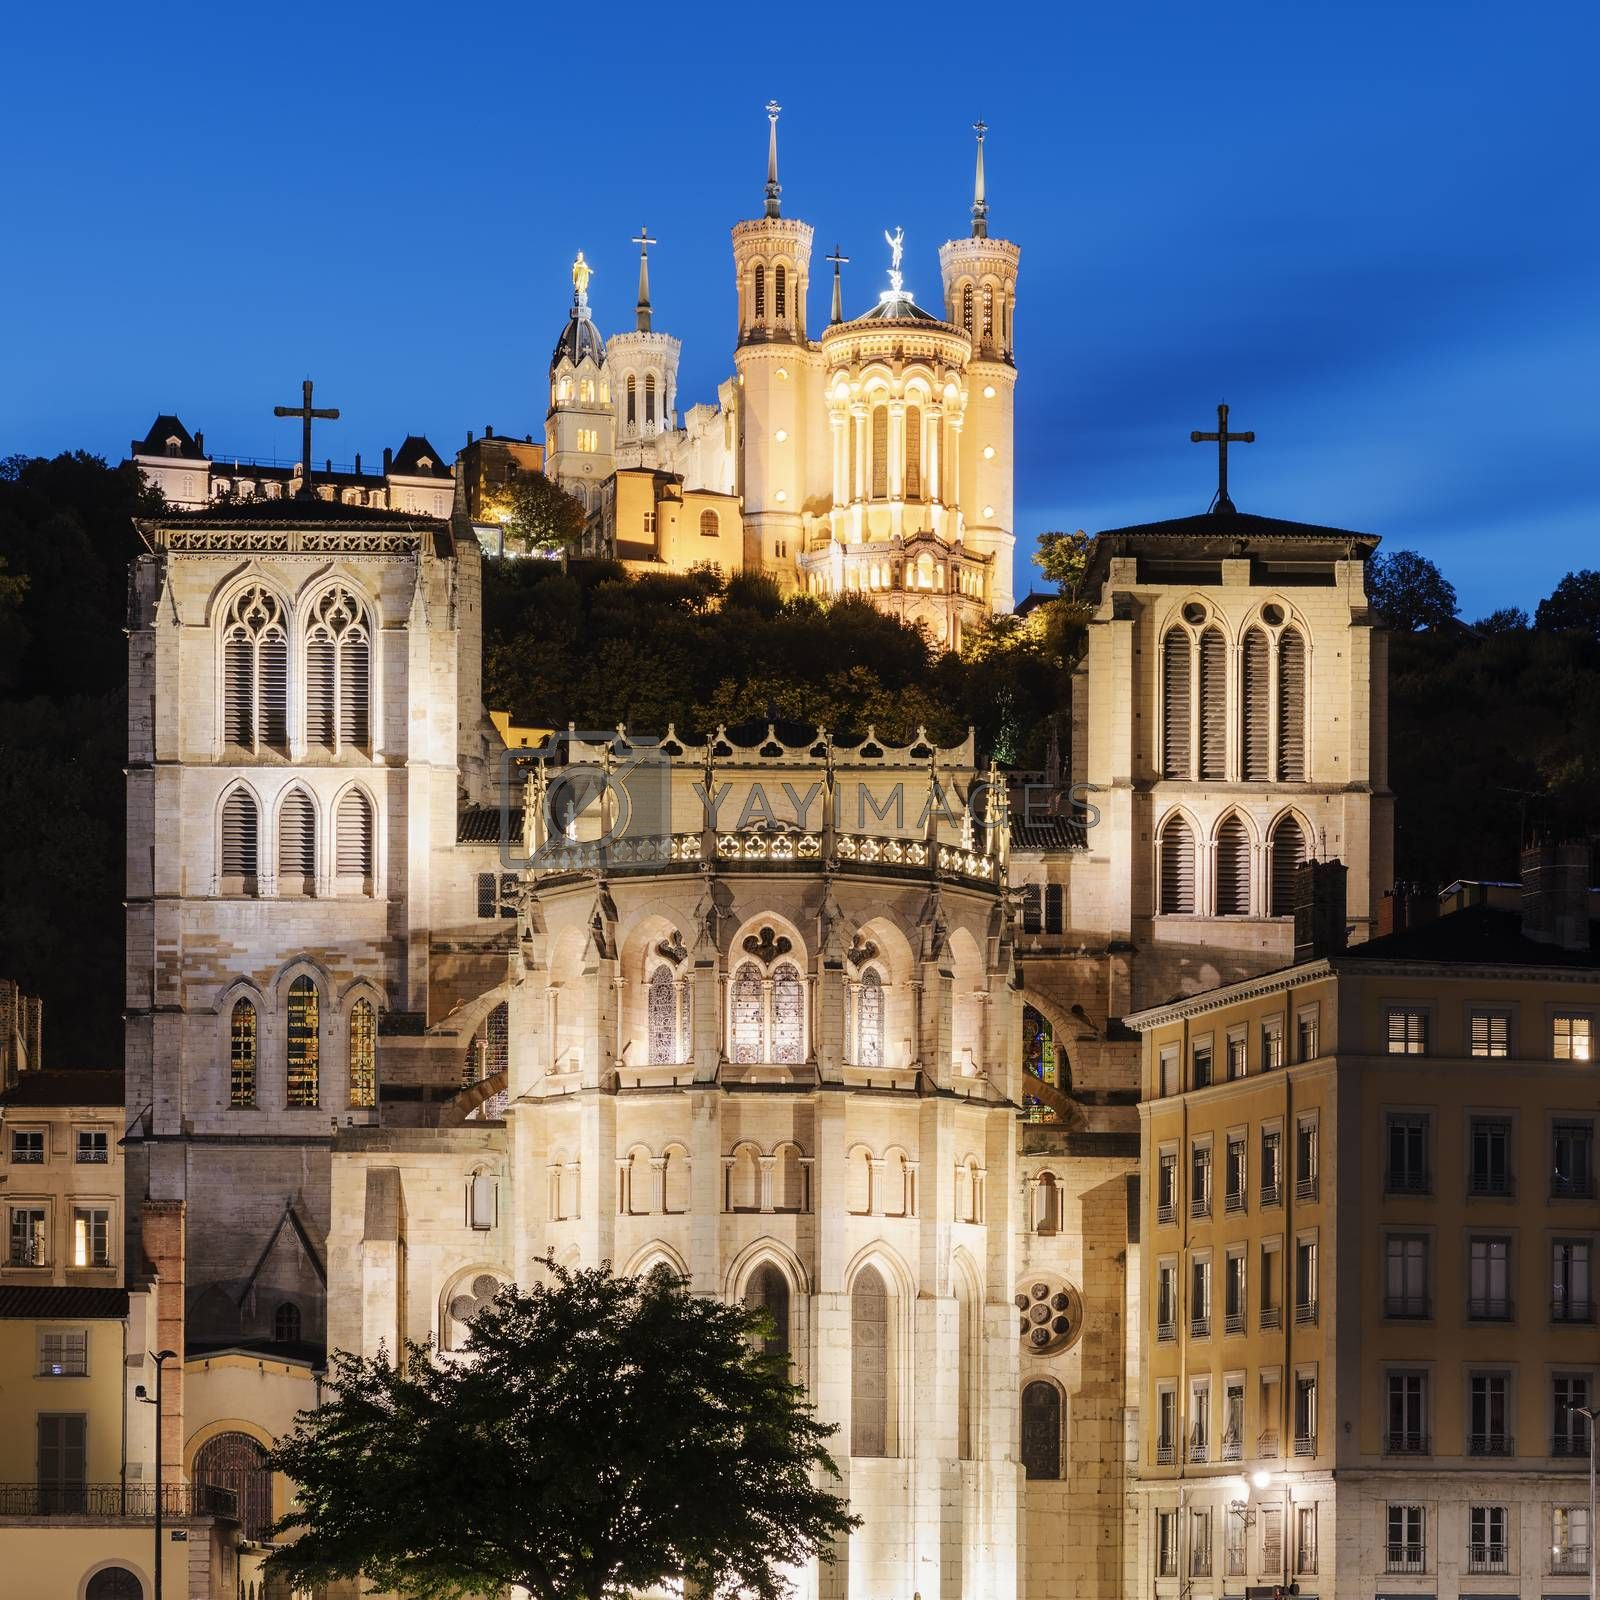 Cathedral of St. Jean and The Basilica Notre Dame de fourviere in Lyon, France at night